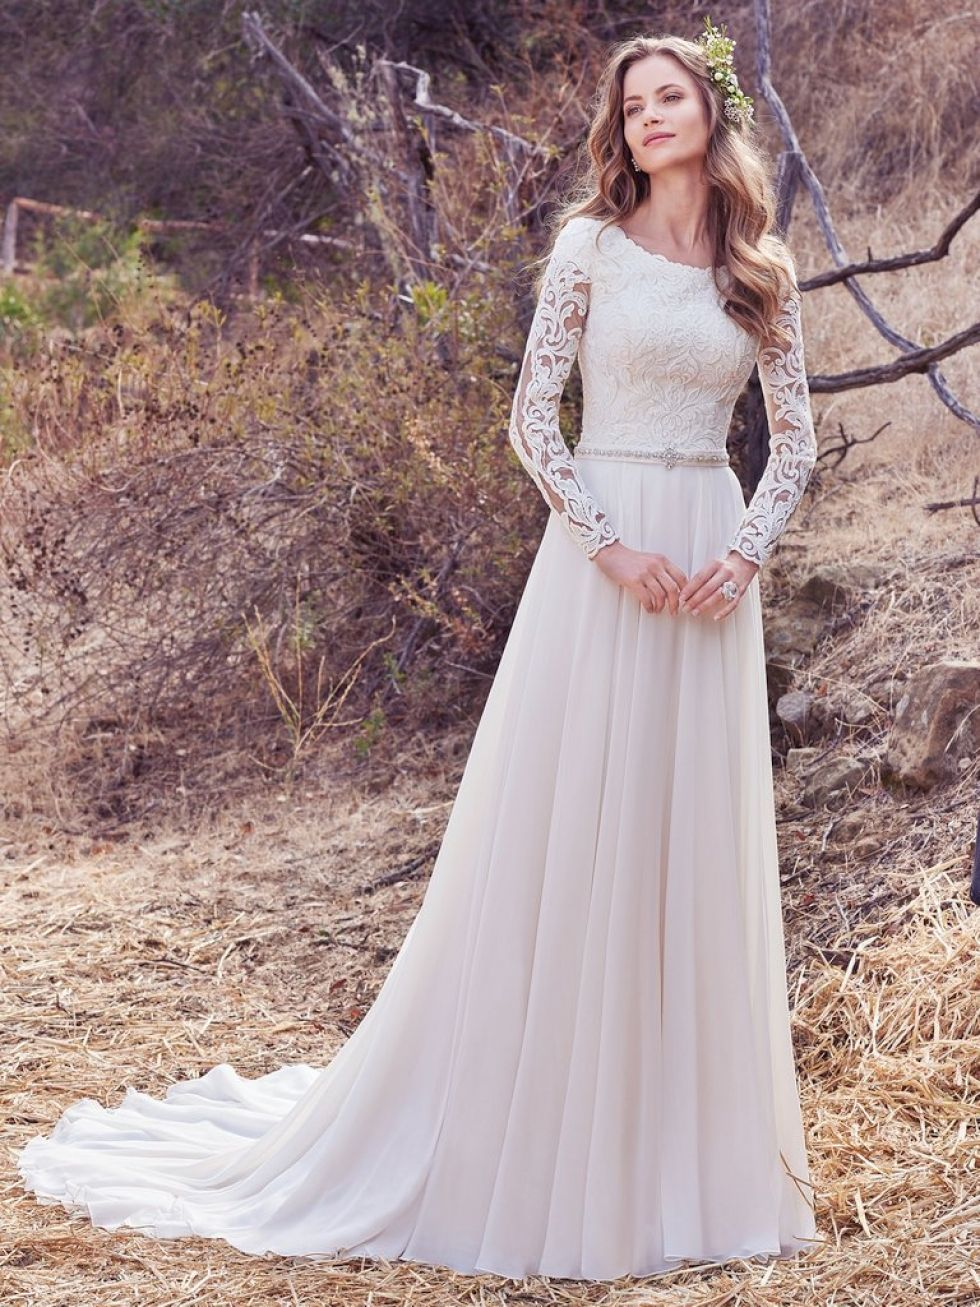 Modest Wedding Dress With Chiffon Skirt Lace Long Sleeves Scoop Neck And Beaded Belt Perfect For Lds Temple Weddings By Maggie Sottero